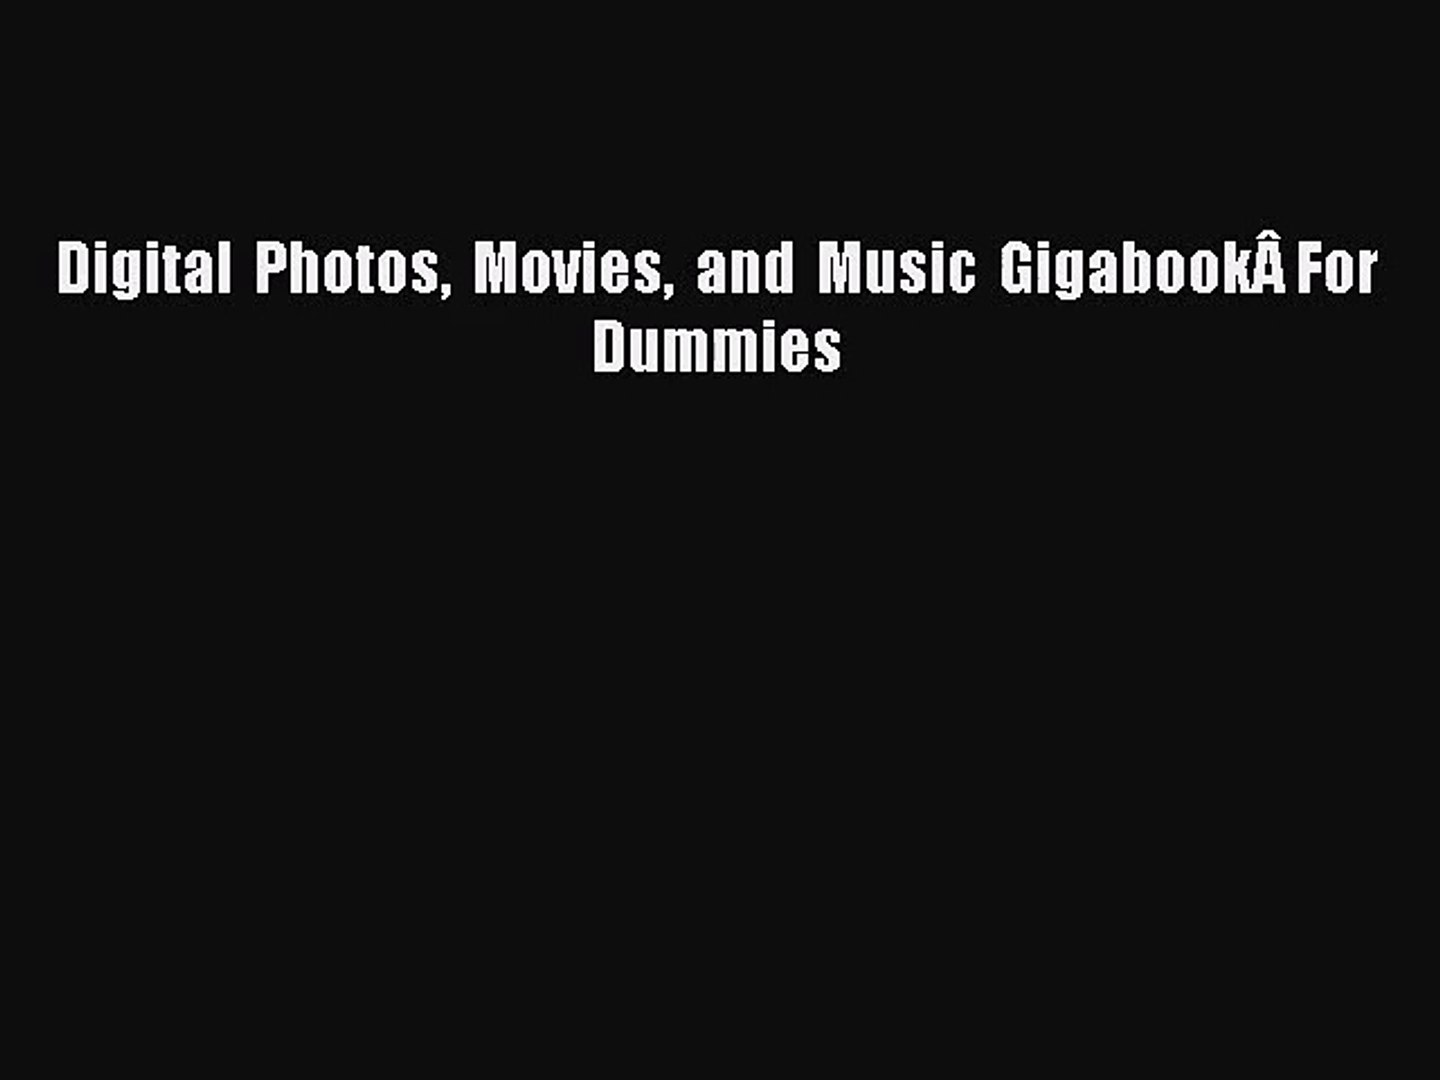 [PDF Download] Digital Photos Movies and Music Gigabook For Dummies [Download] Online